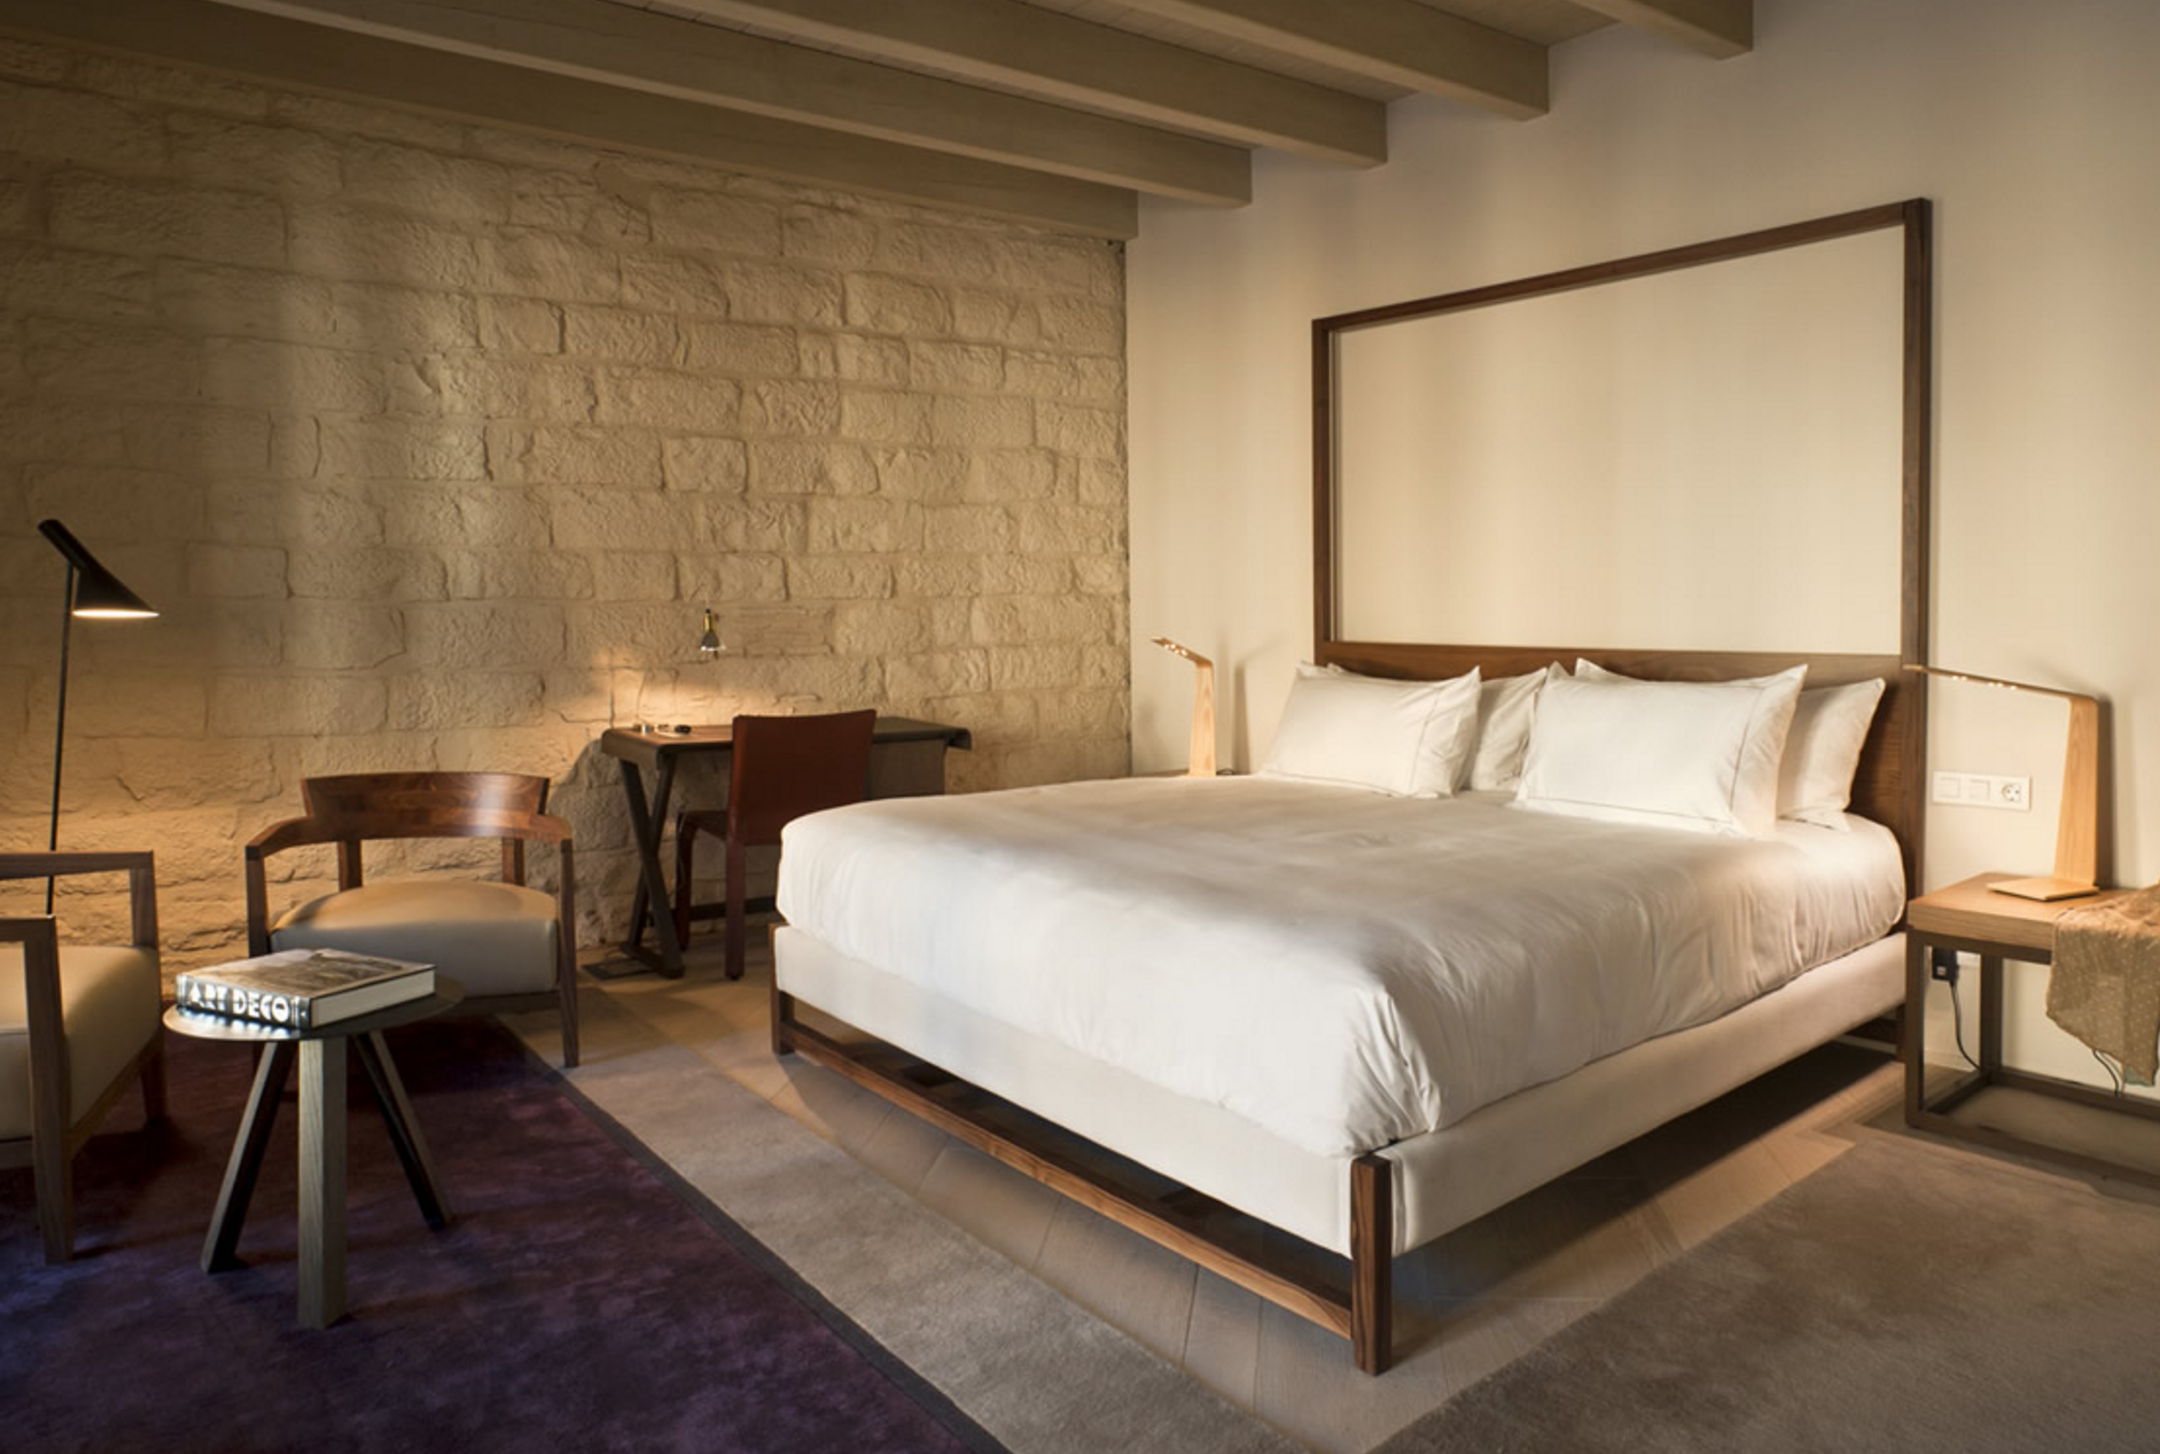 5 Hotels Barcelona: The Mercer Hotel | Love Daily Dose